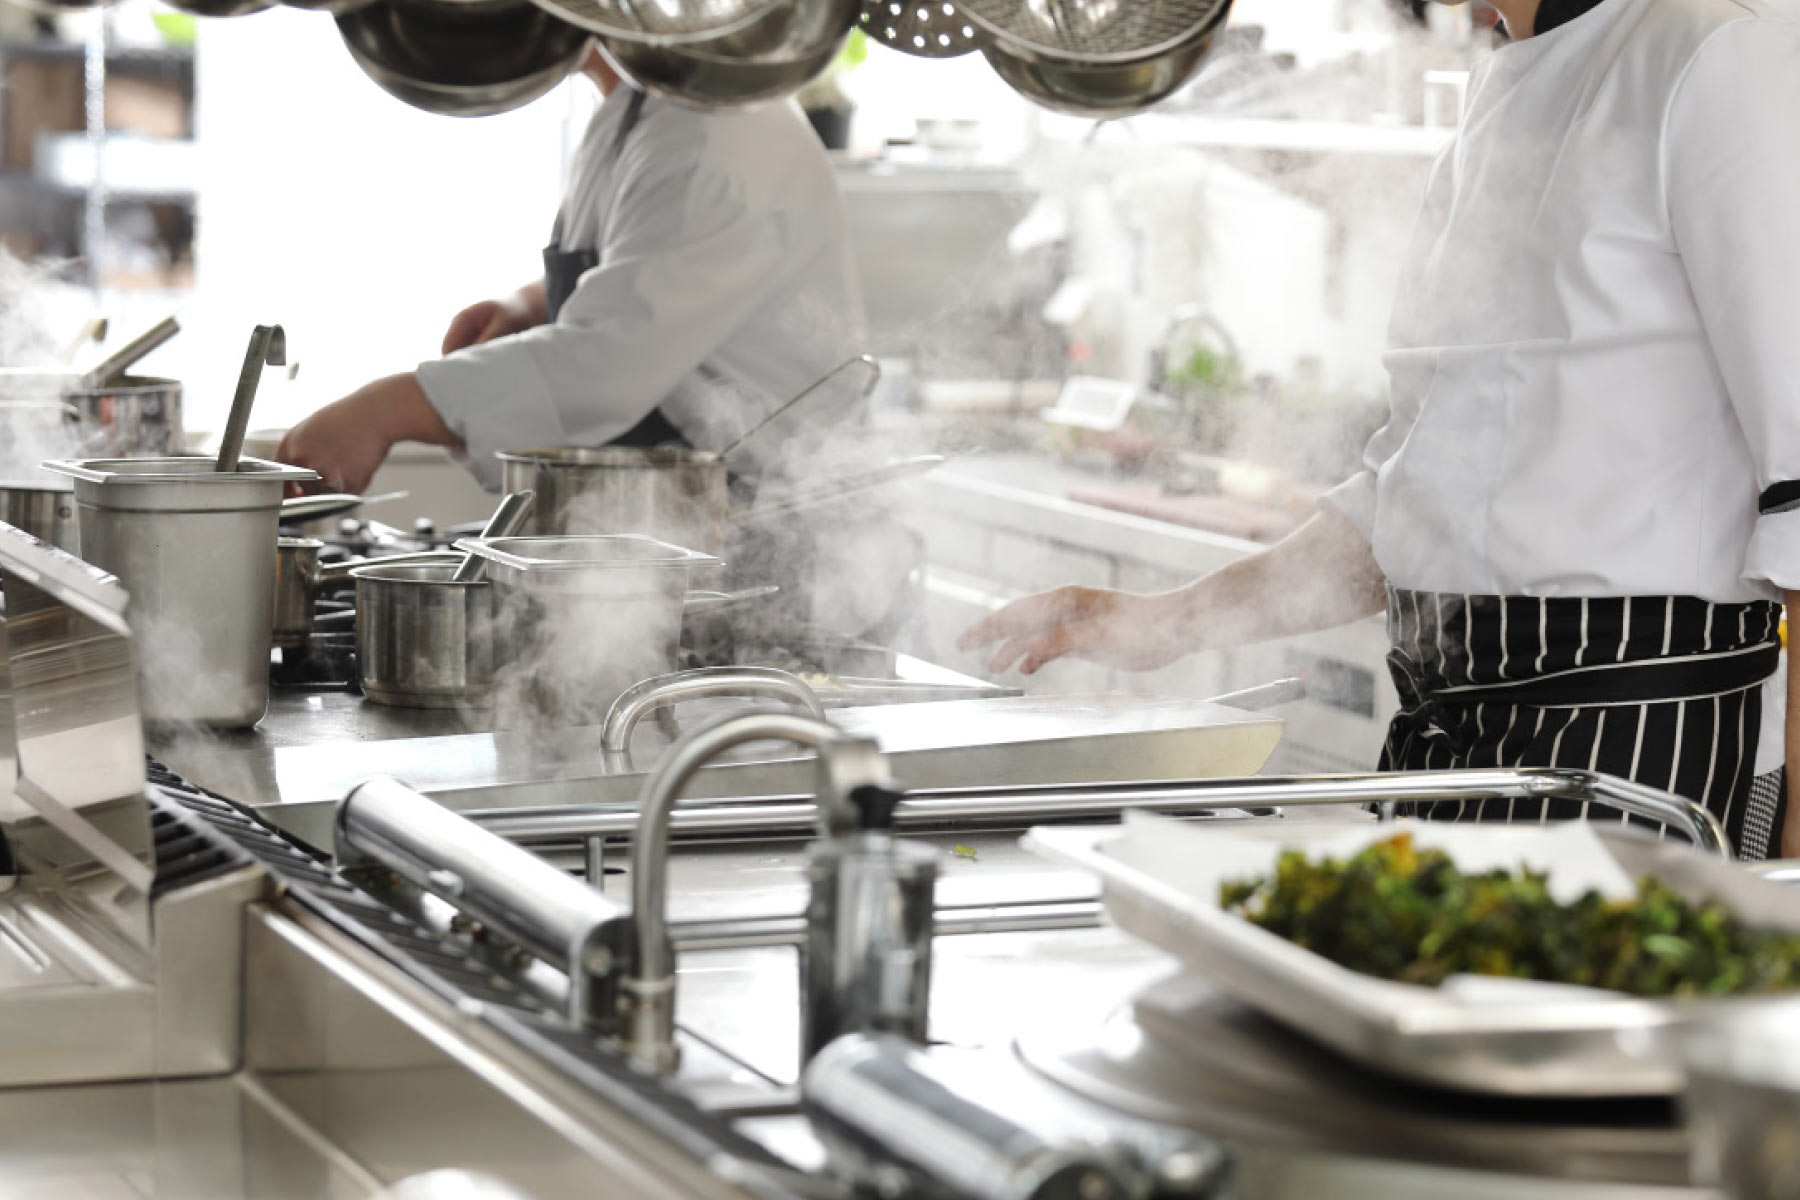 What Are the Requirements for a Commercial Kitchen?